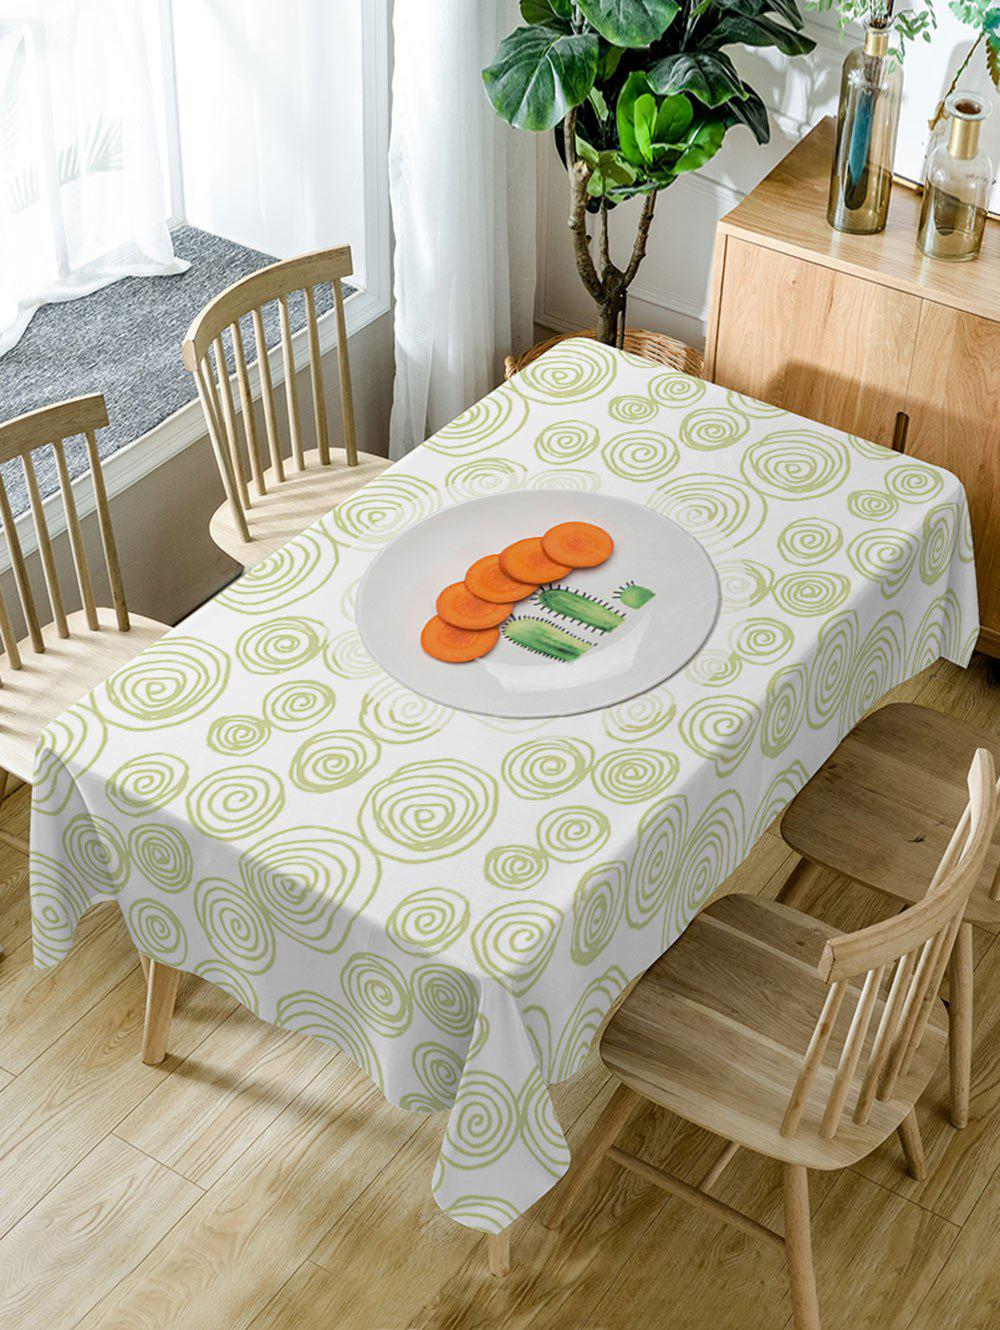 Discount Carrot Coil Pattern Waterproof Dining Table Cloth